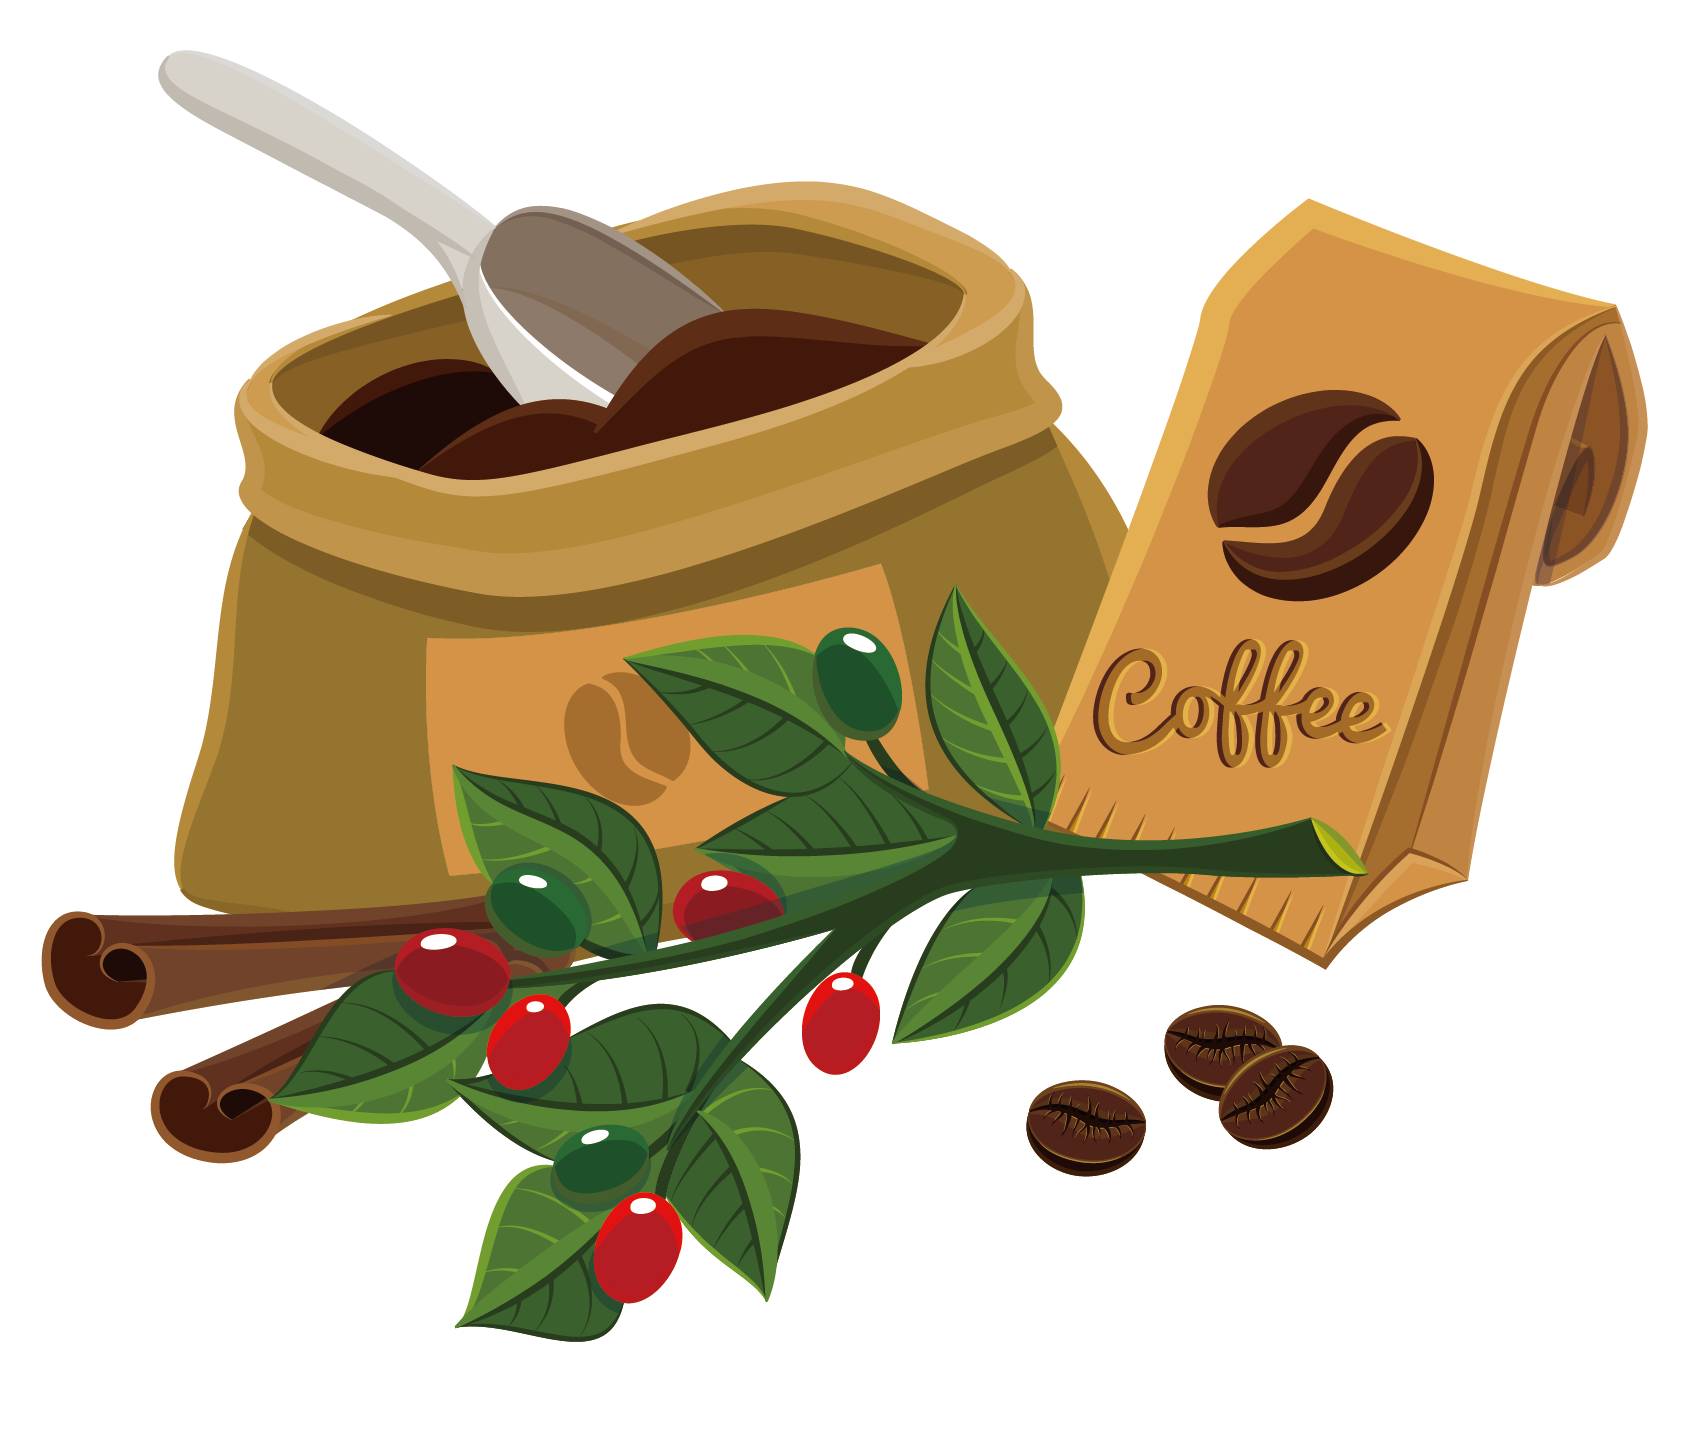 Bean cafe clip art. Clipart coffee coffee powder